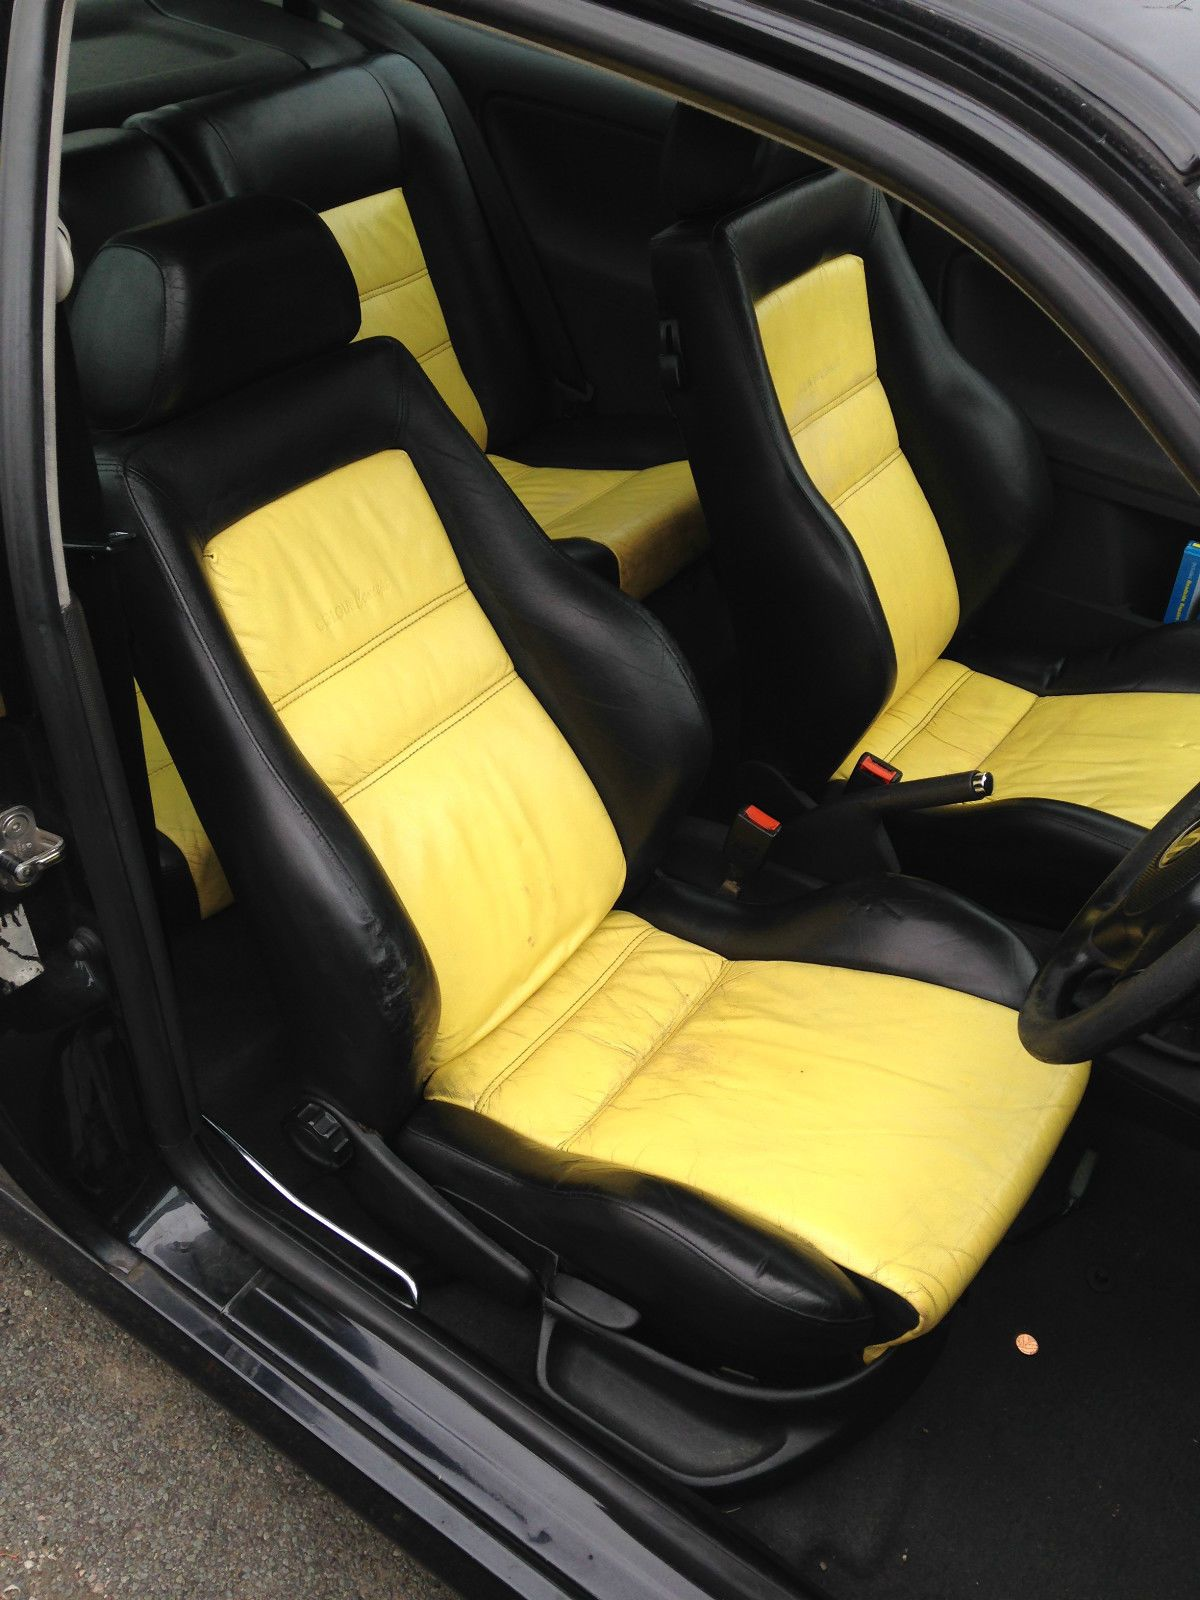 VW Polo 6N / 6N2 Mk3 Golf Colour Concept Leather Interior Yellow and black seats 3 Door Seats 5 & VW Polo 6N / 6N2 Mk3 Golf Colour Concept Leather Interior Yellow and ...